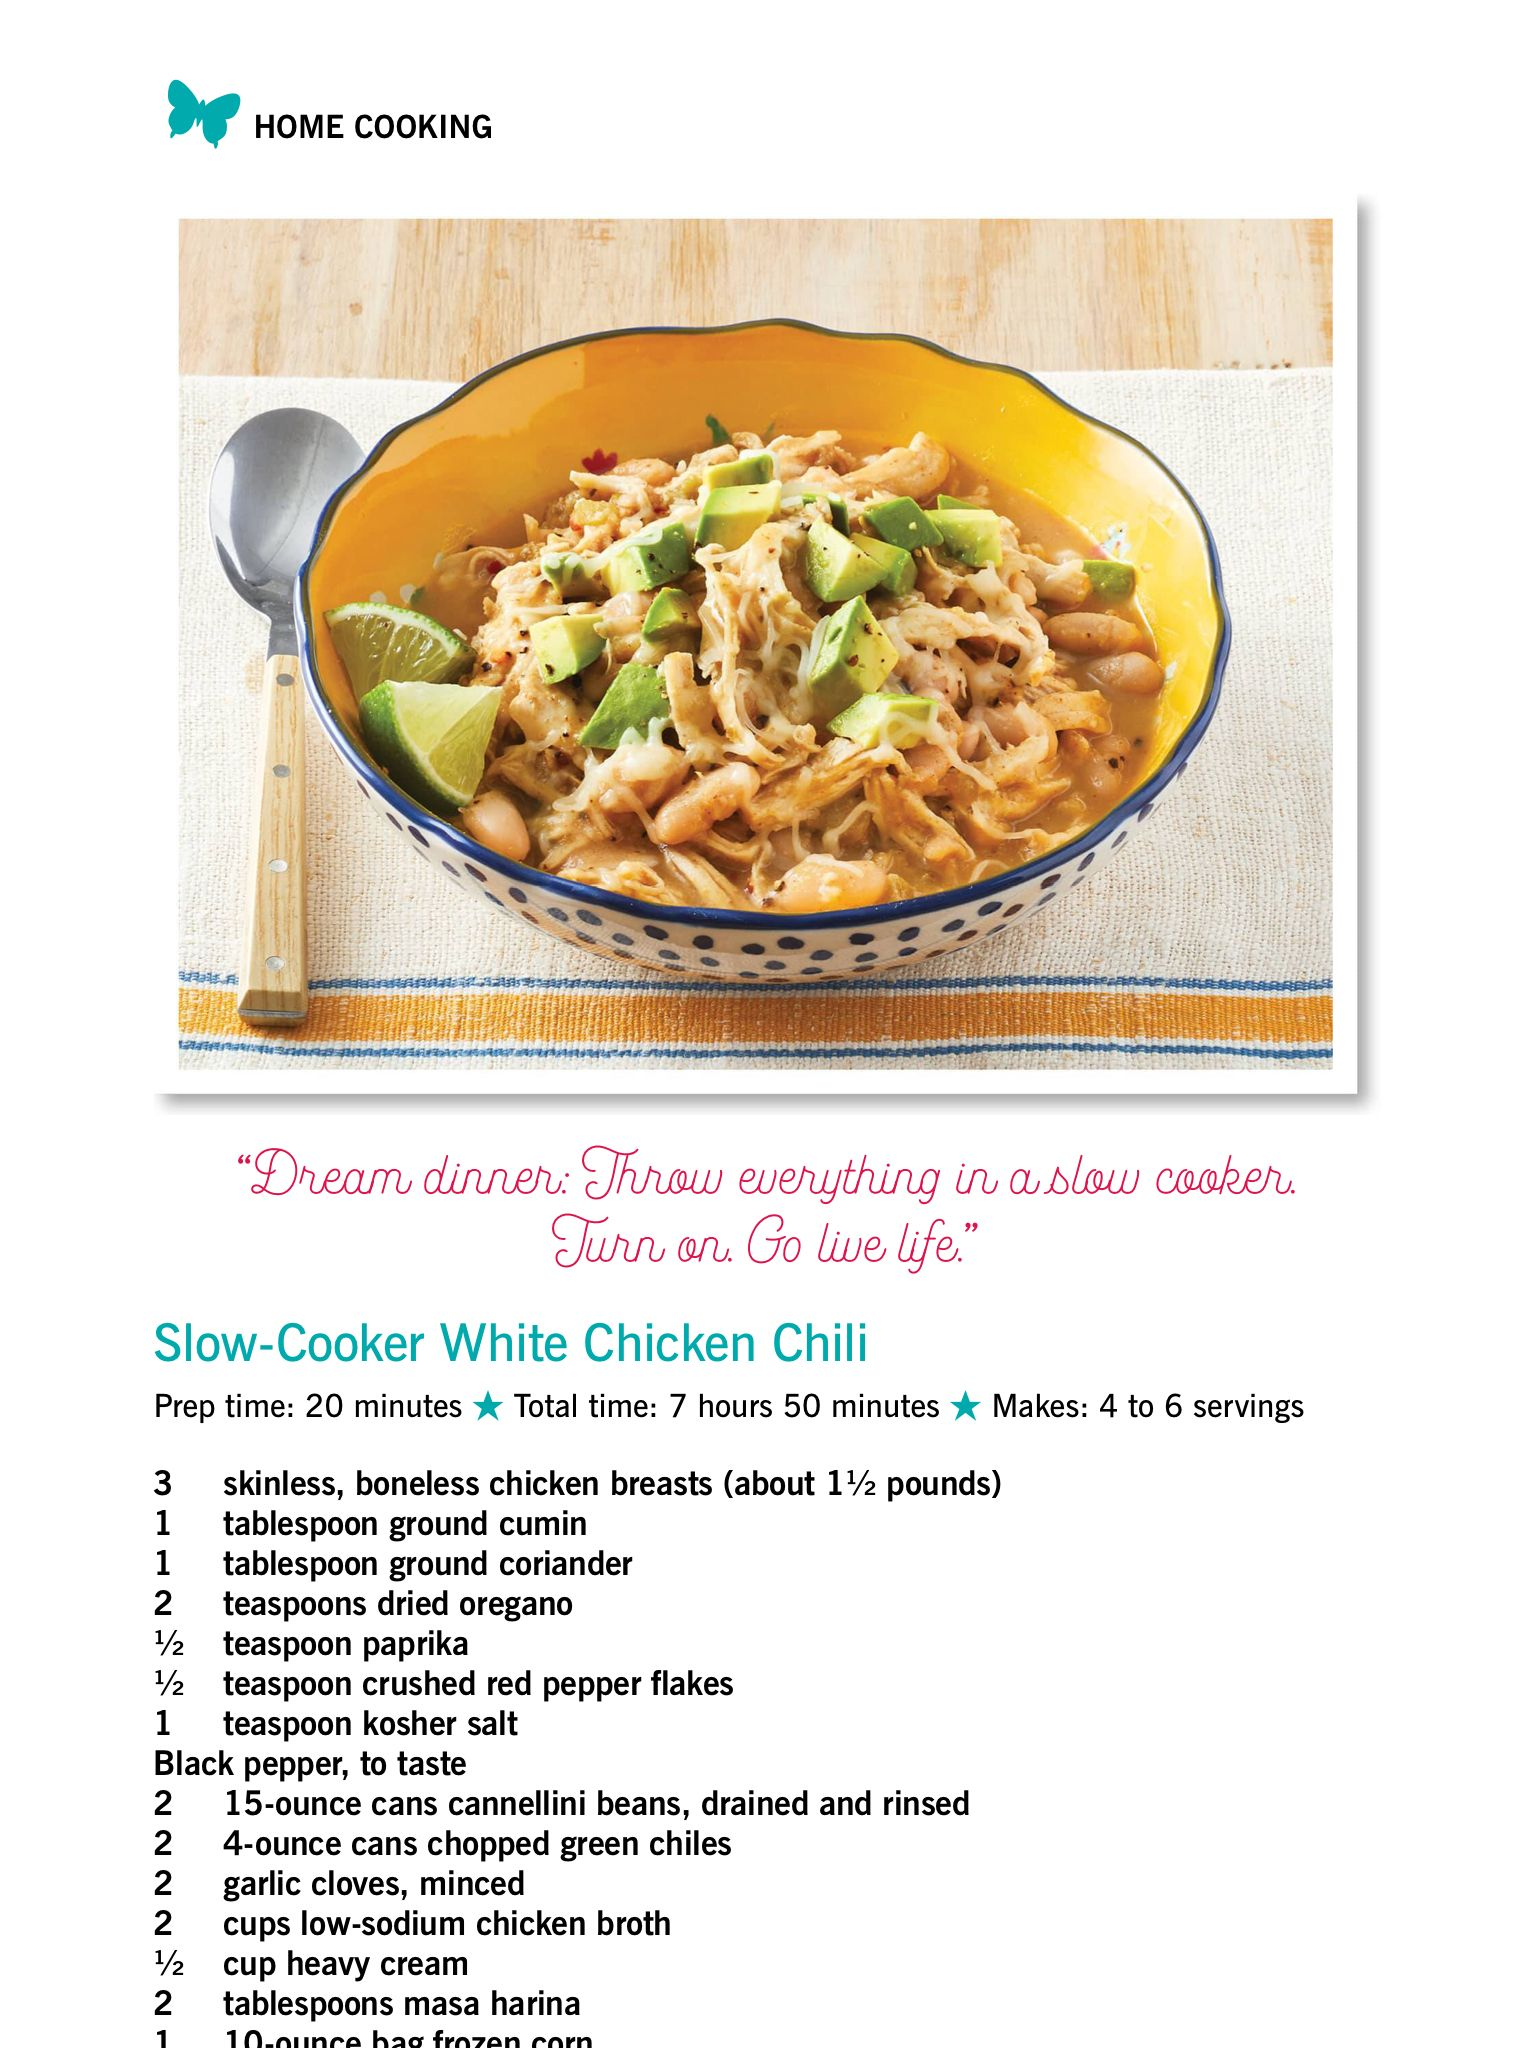 Slow Cooker White Chicken Chili From The Pioneer Woman Holiday 2018 Read It On The T White Chicken Chili Slow Cooker White Chicken Chili White Chili Recipe